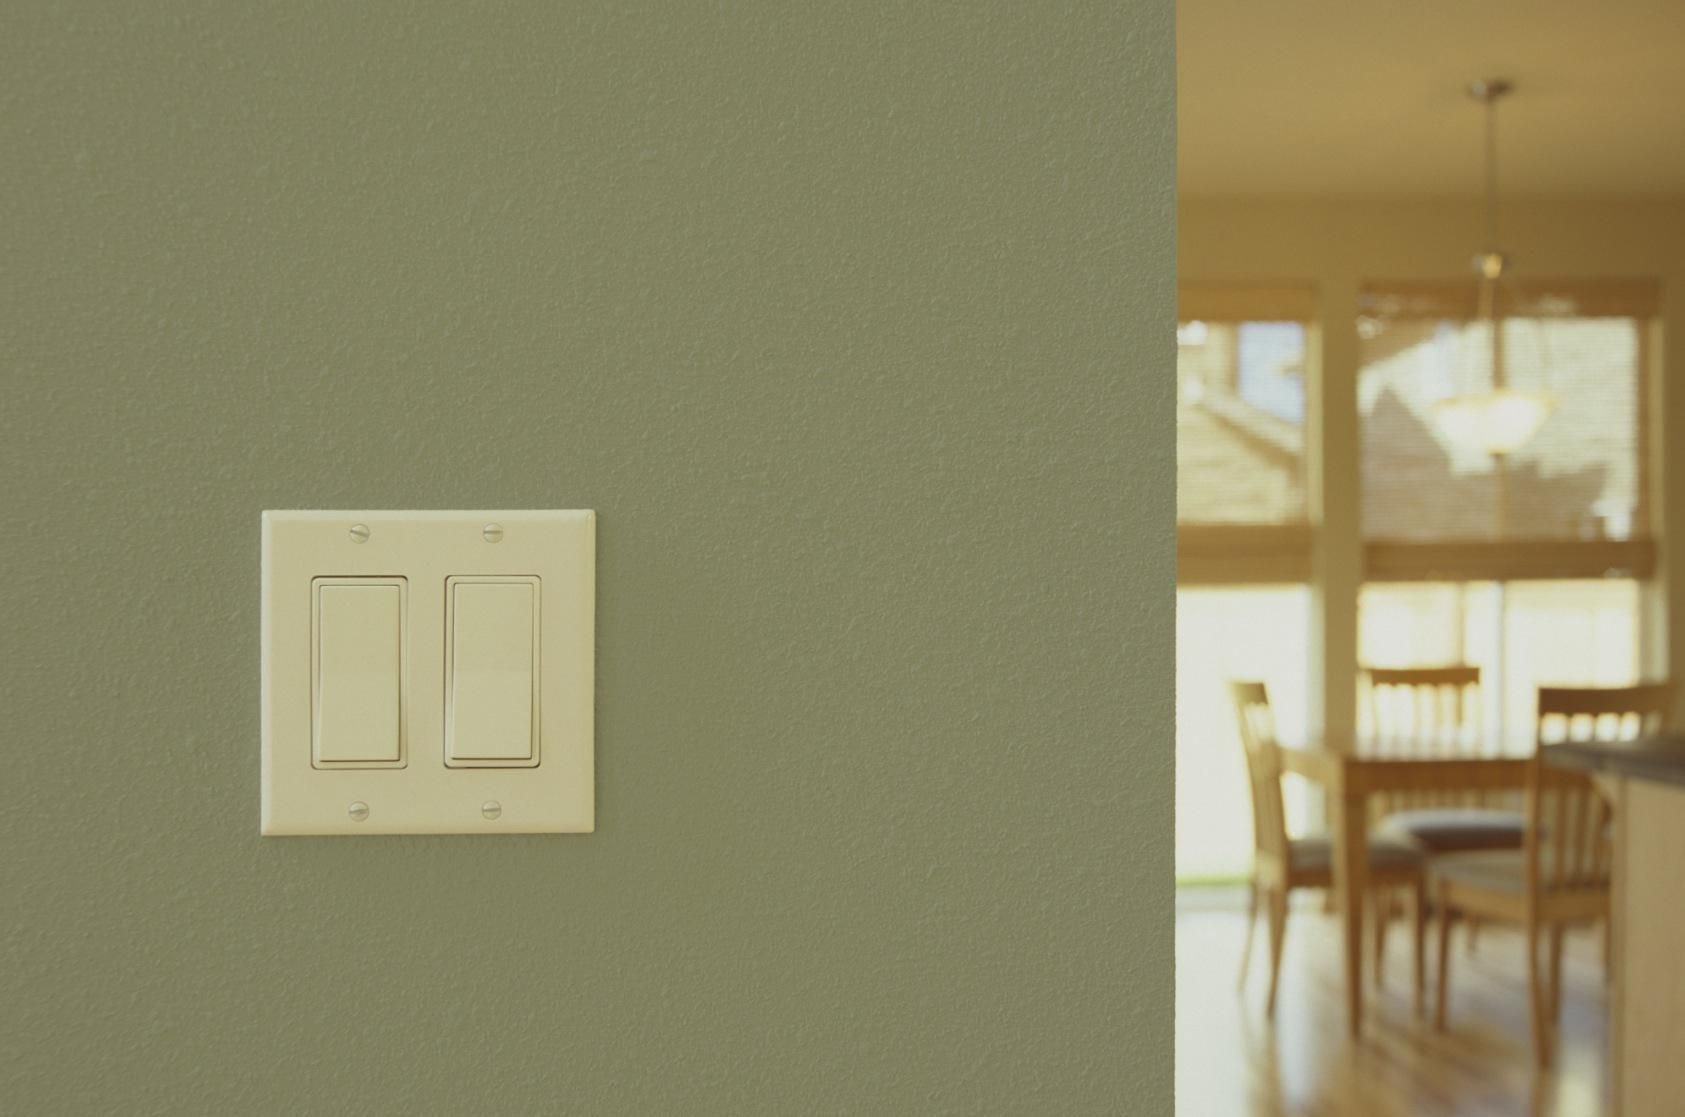 Outlets Controlled By Light Switch In Another Room Electrical Diy